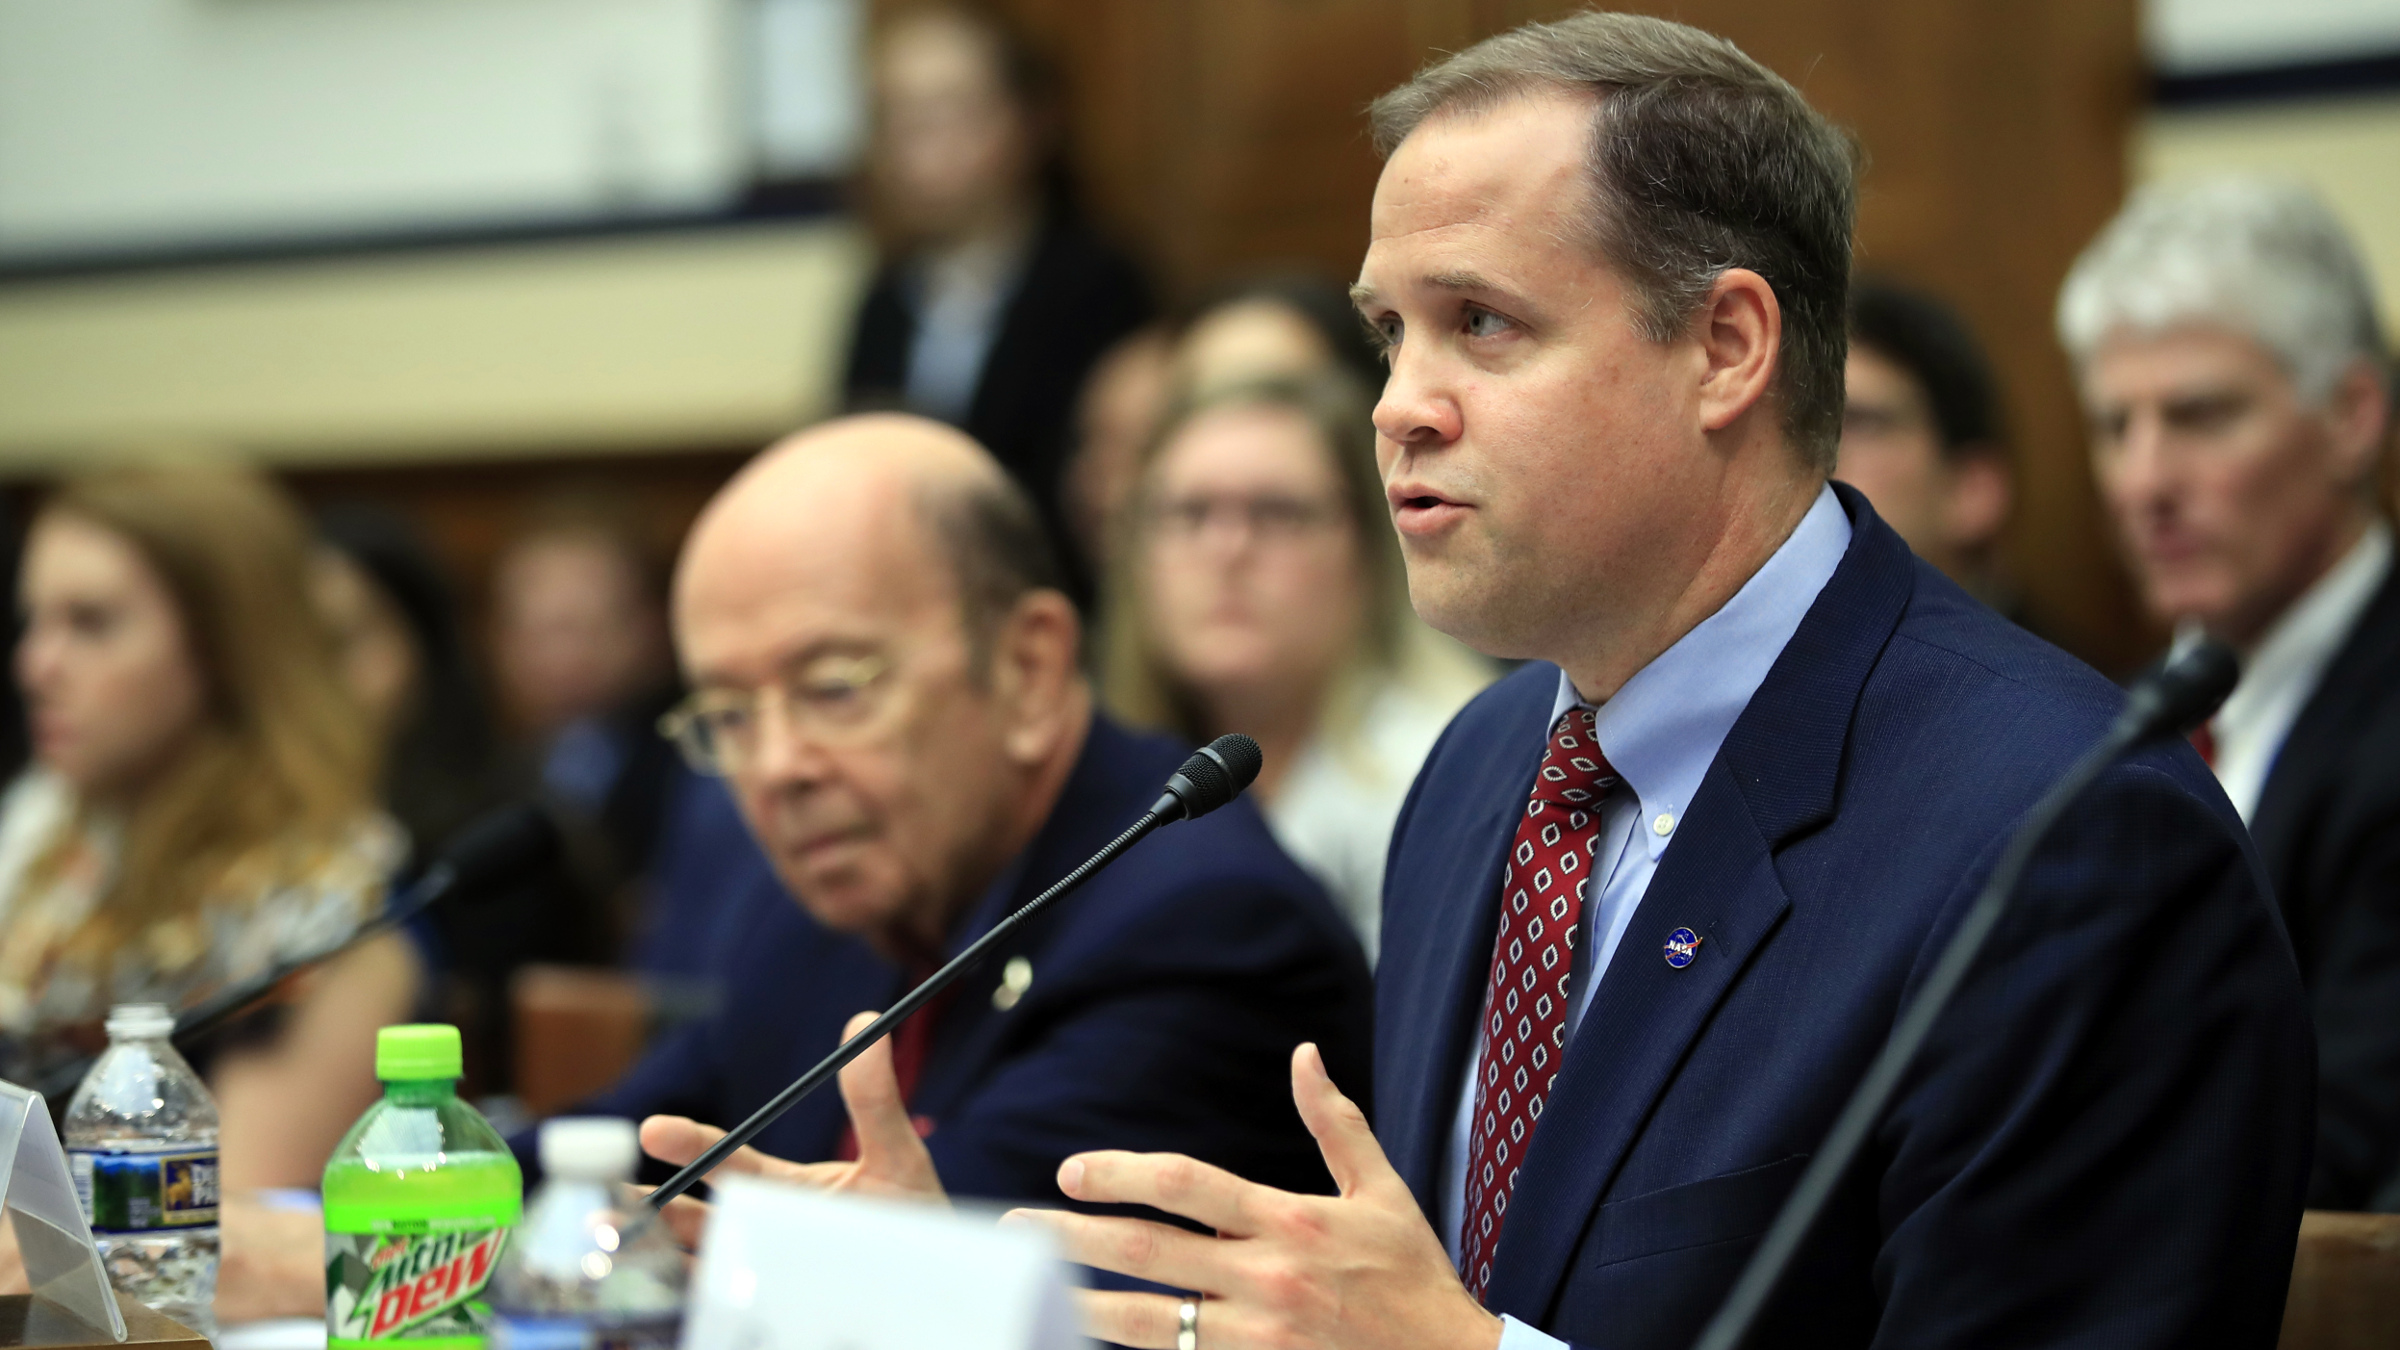 NASA Administrator Jim Bridenstine with Commerce Secretary Wilbur Ross, left, testifies before a House Committee on Science, Space, and Technology Space Subcommittee and House Armed Services Committee Strategic Forces Subcommittee joint hearing on 'Space Situational Awareness: Whole of Government Perspectives on Roles and Responsibilities' on Capitol Hill in Washington, Friday, June 22, 2018.